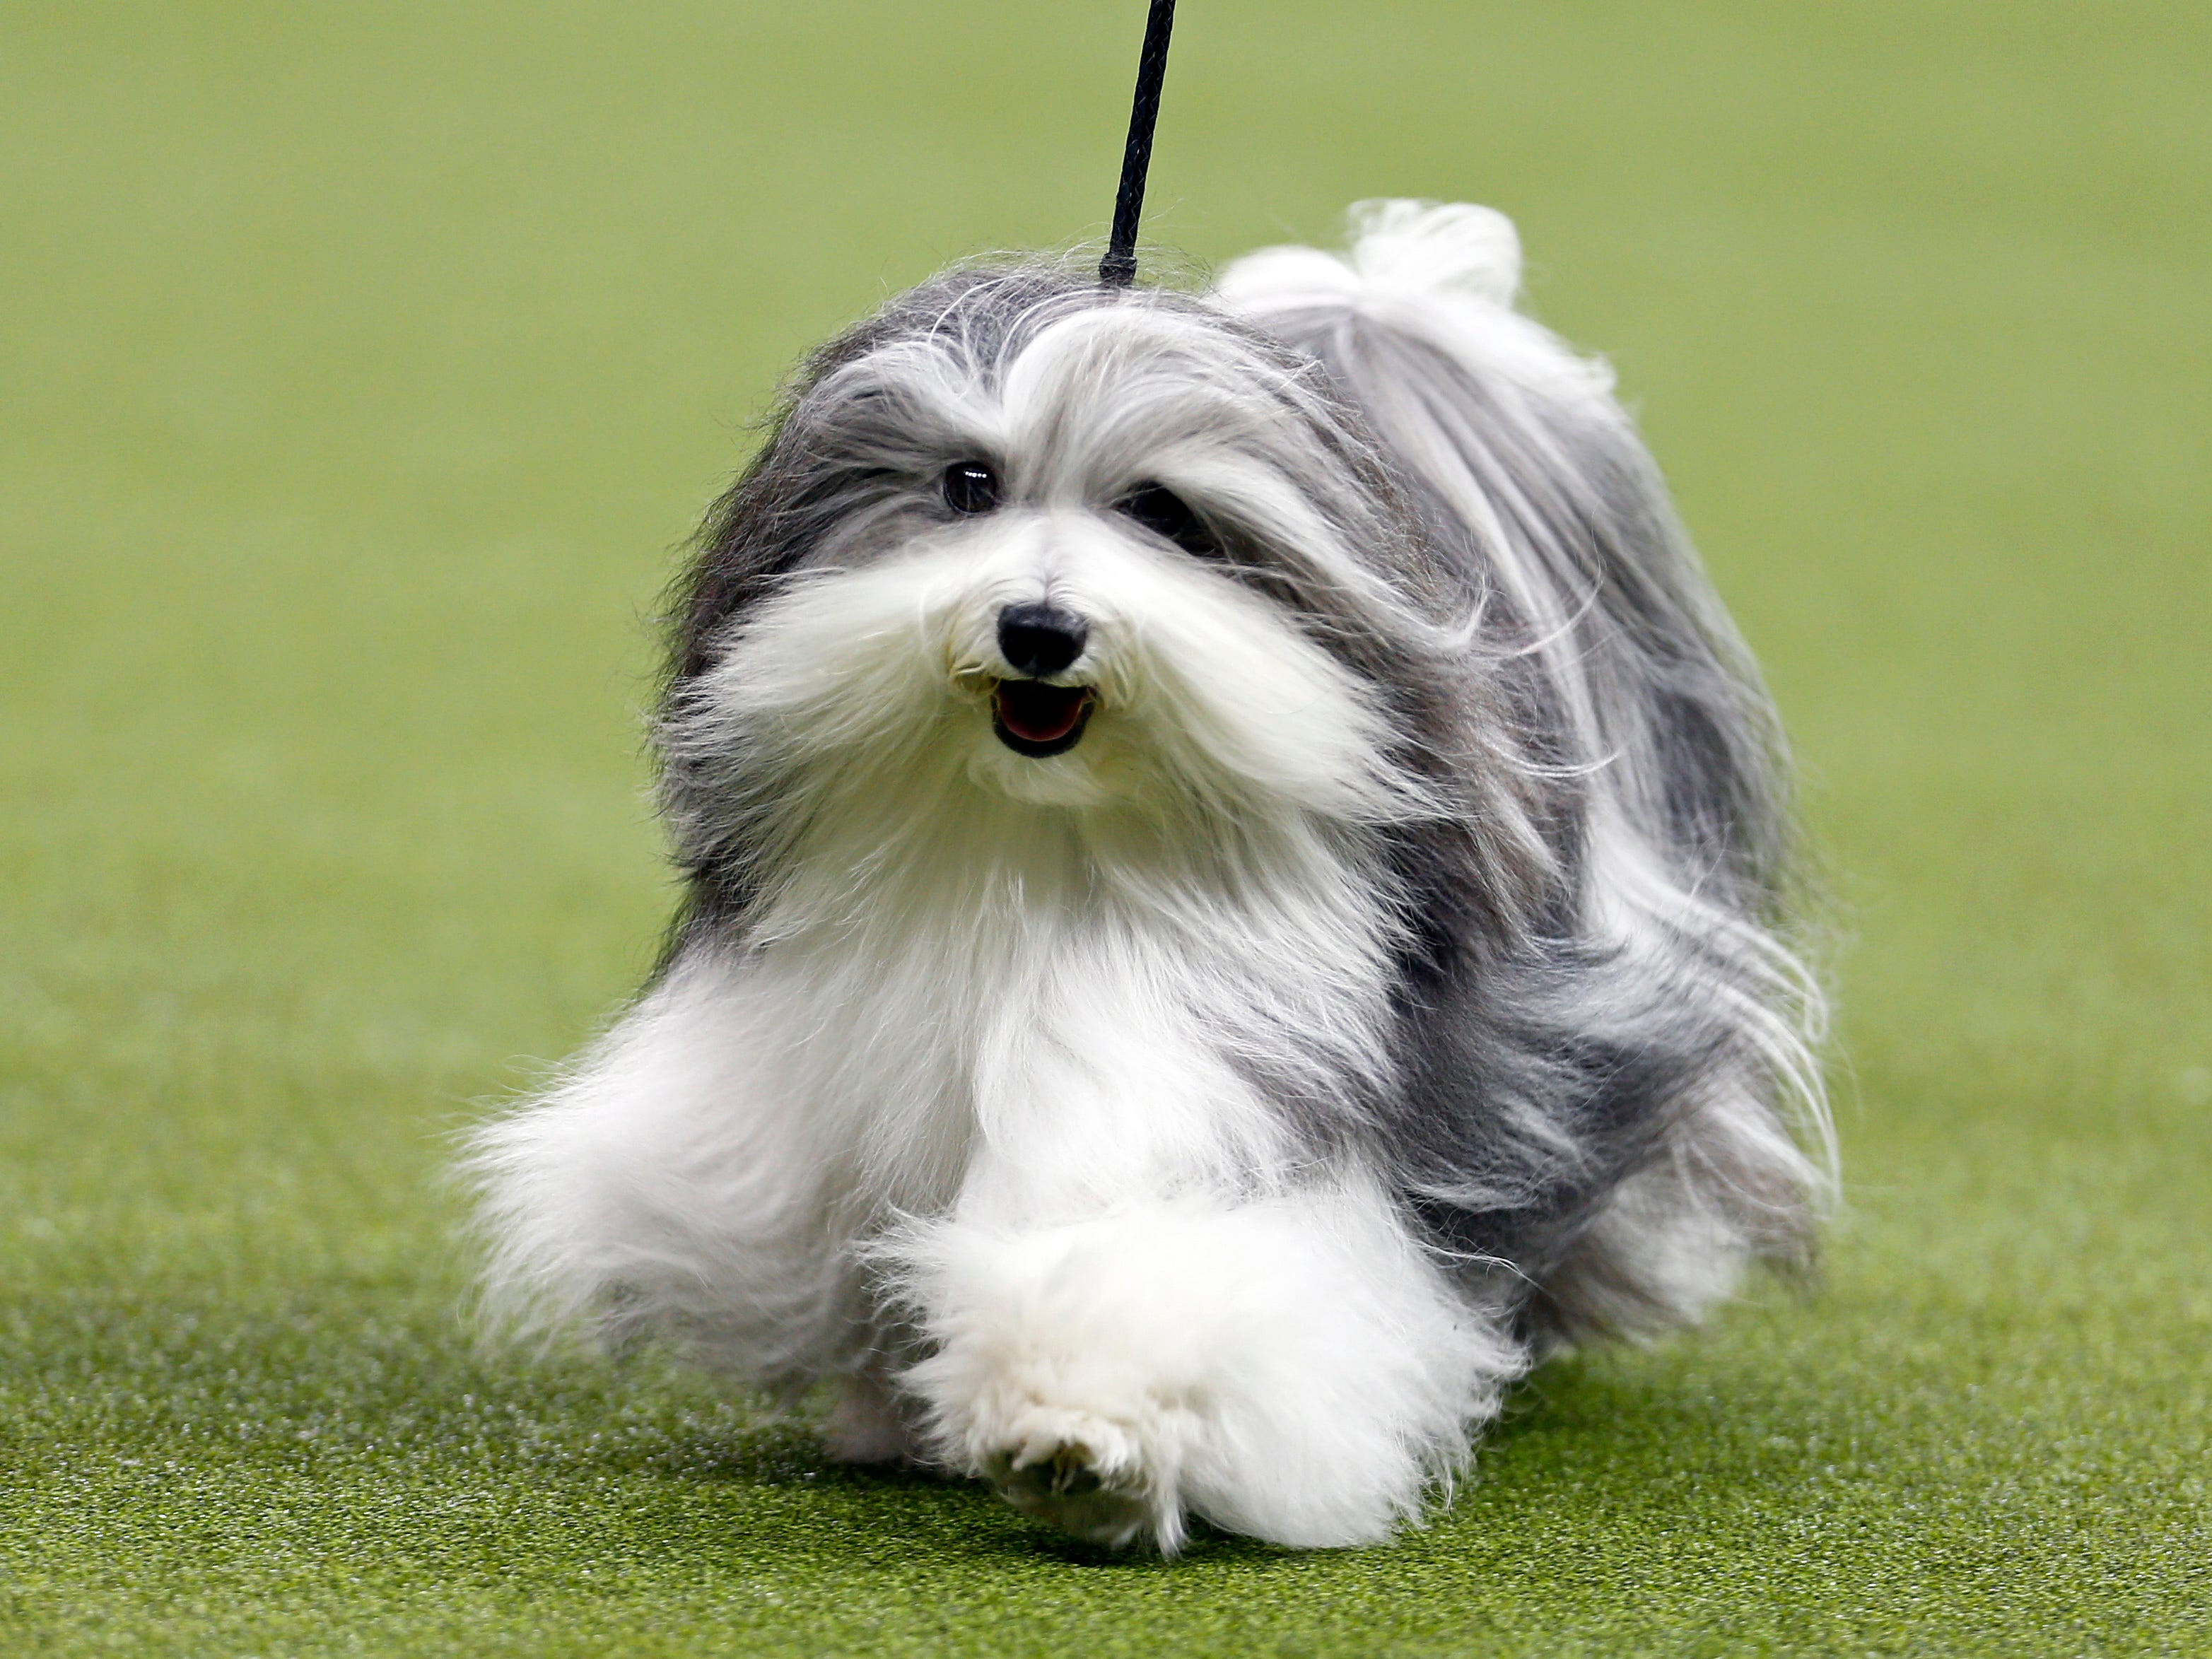 This is Bono a Havanese winner in the Toy group.